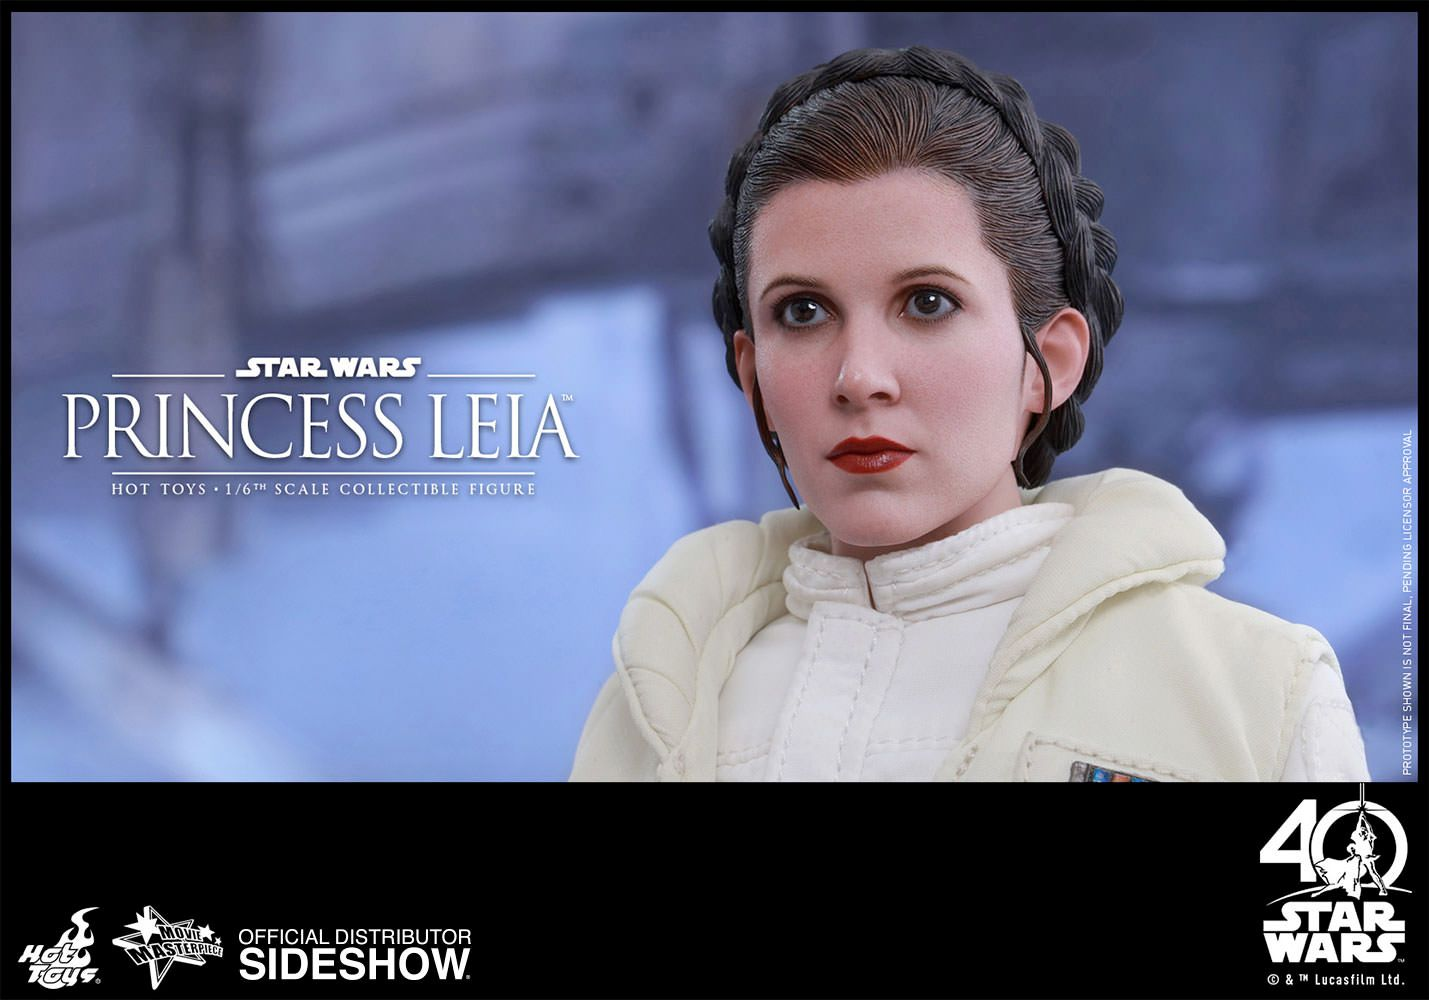 Hot-Toys-Princess-Leia-Collectible-Figure-Episode-V-07